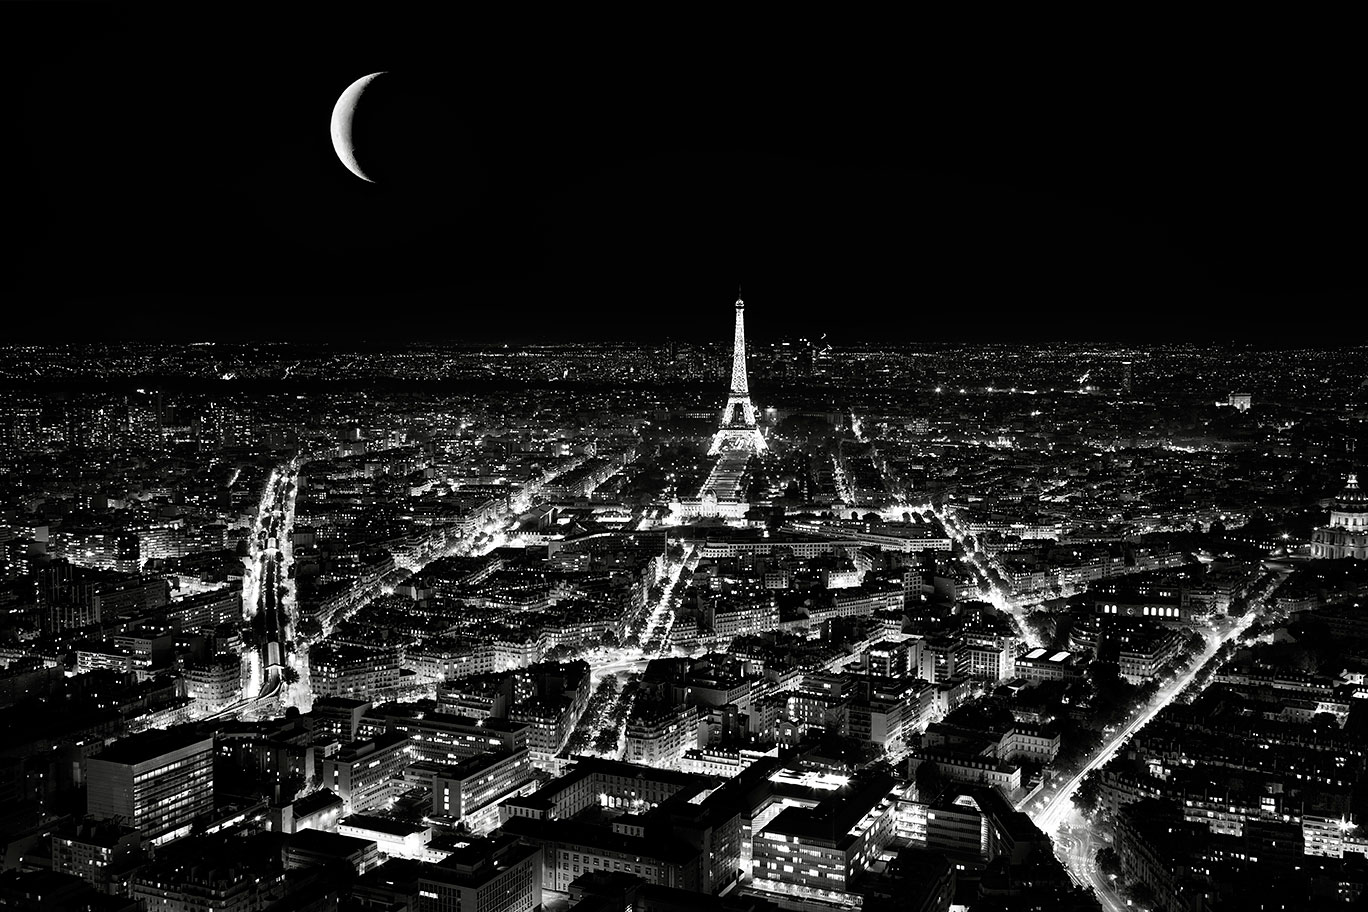 Moom rise over Eiffel tower from Montparnasse tower